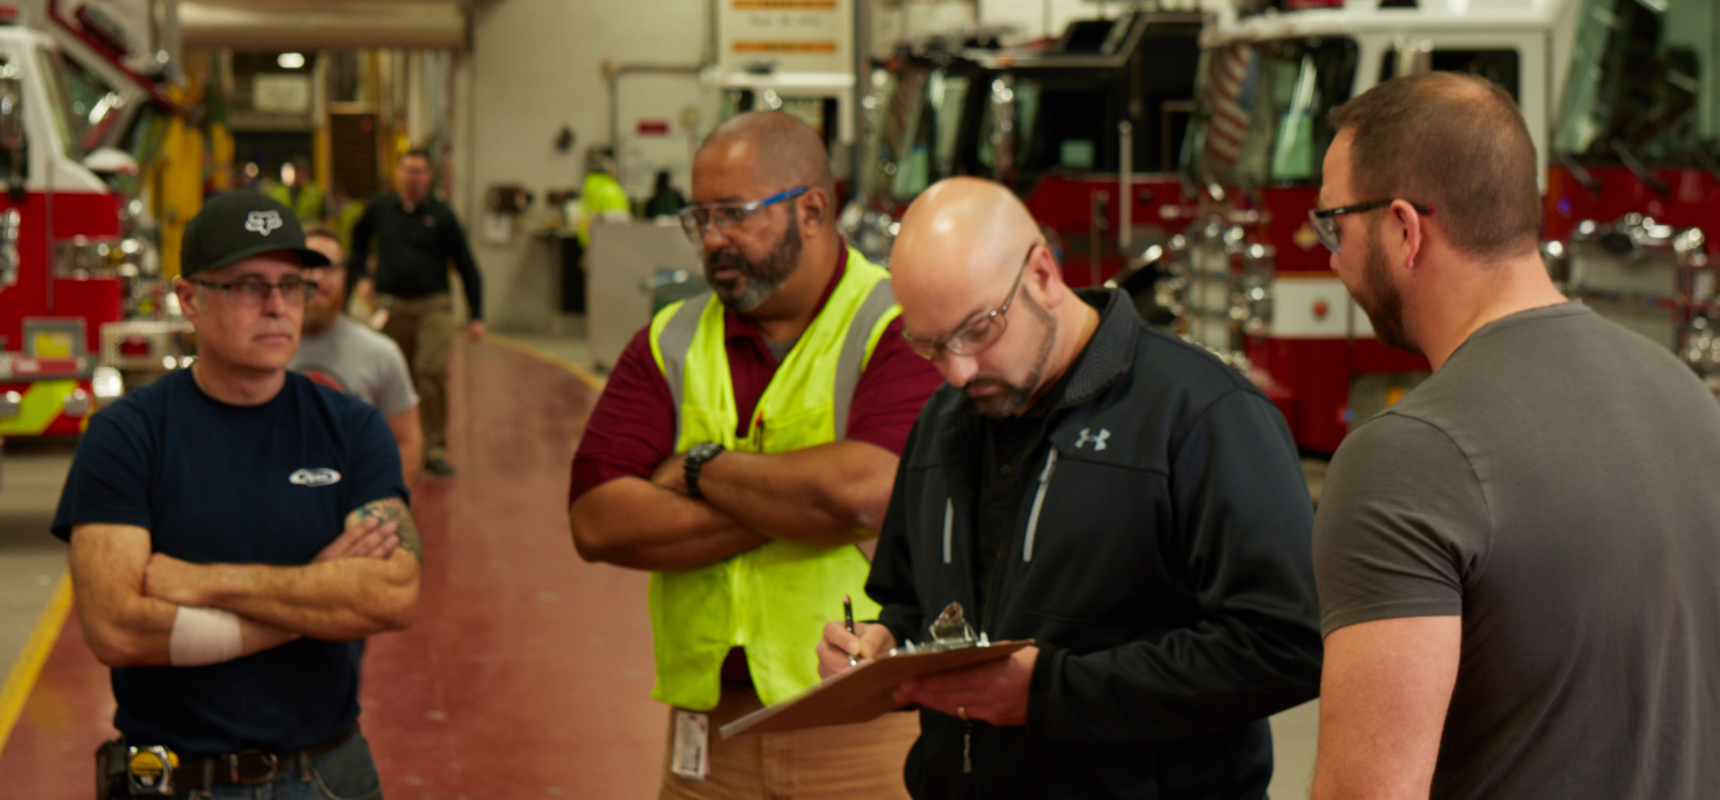 Fire department and Pierce representatives review items on a clipboard with fire trucks in the facility background.